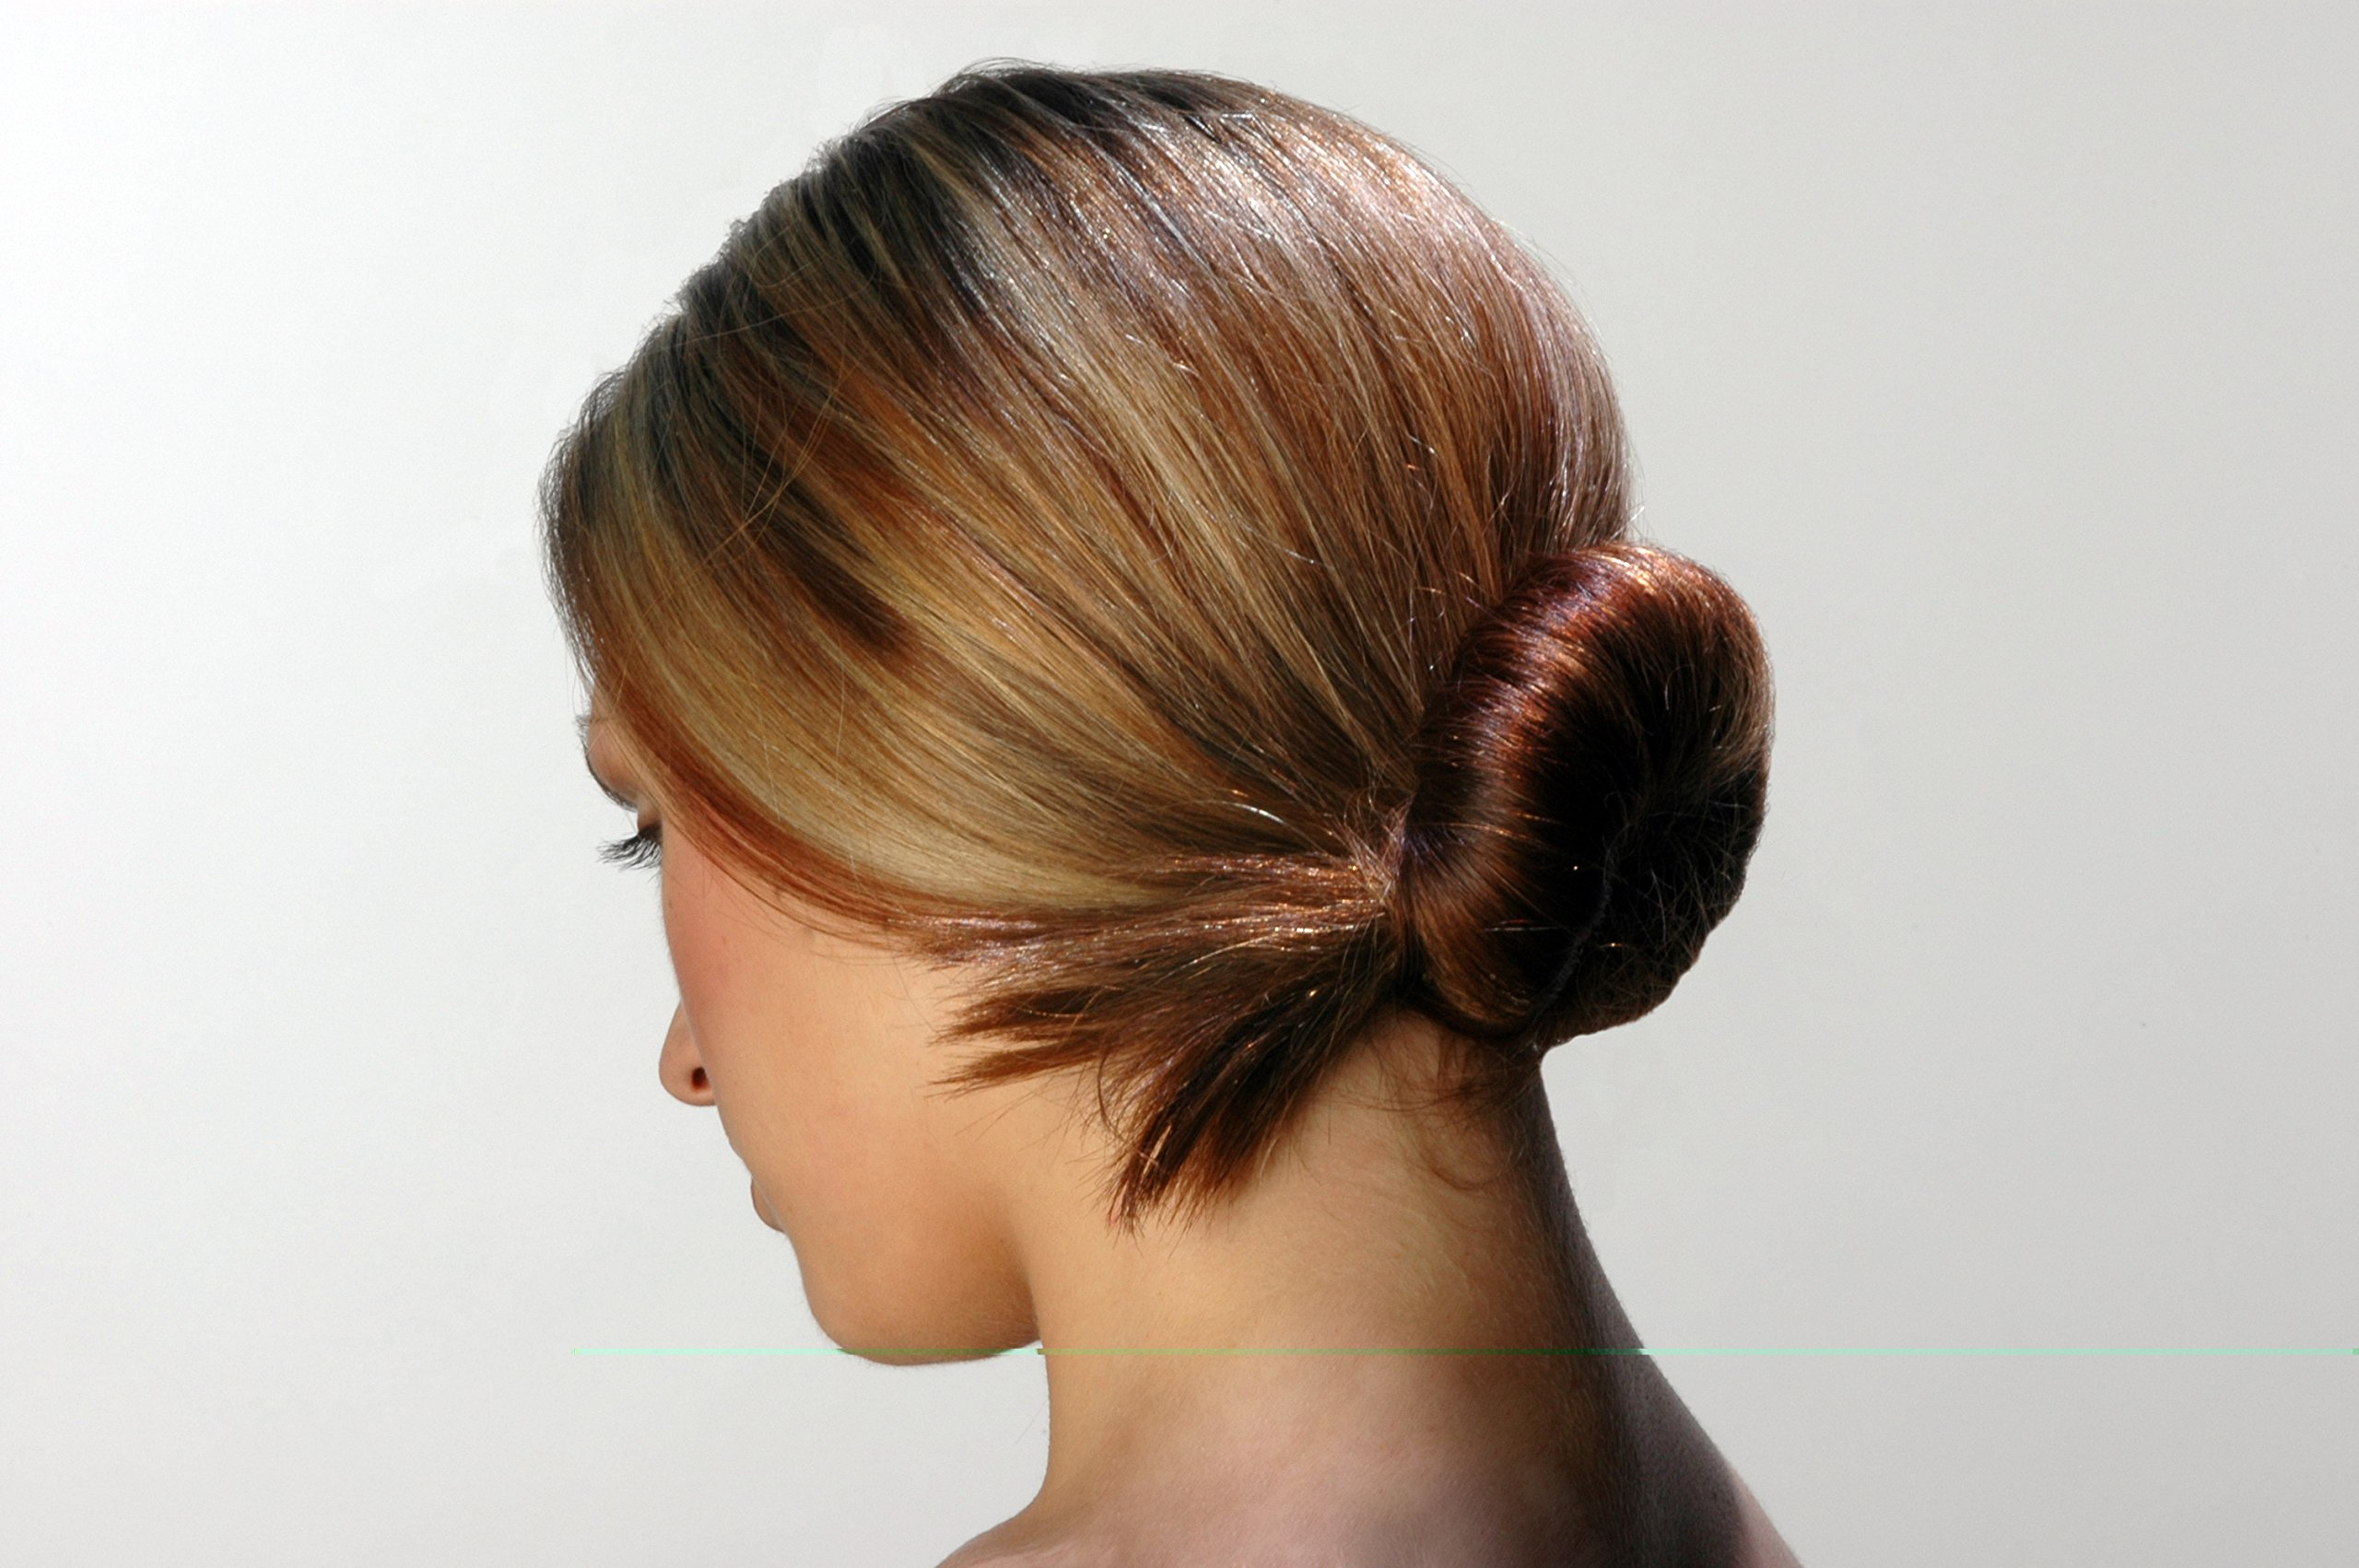 Ballerina Bunmaker-Klicinz Tool to Make Ballerina Bun Instantly-Exceptional Hold Without Hairpins-Get Salon Looking Hair in Seconds- Easy to Use- Frustration Free-Saves Time-Look Great with Celeb Look by Klicinz (Image #6)